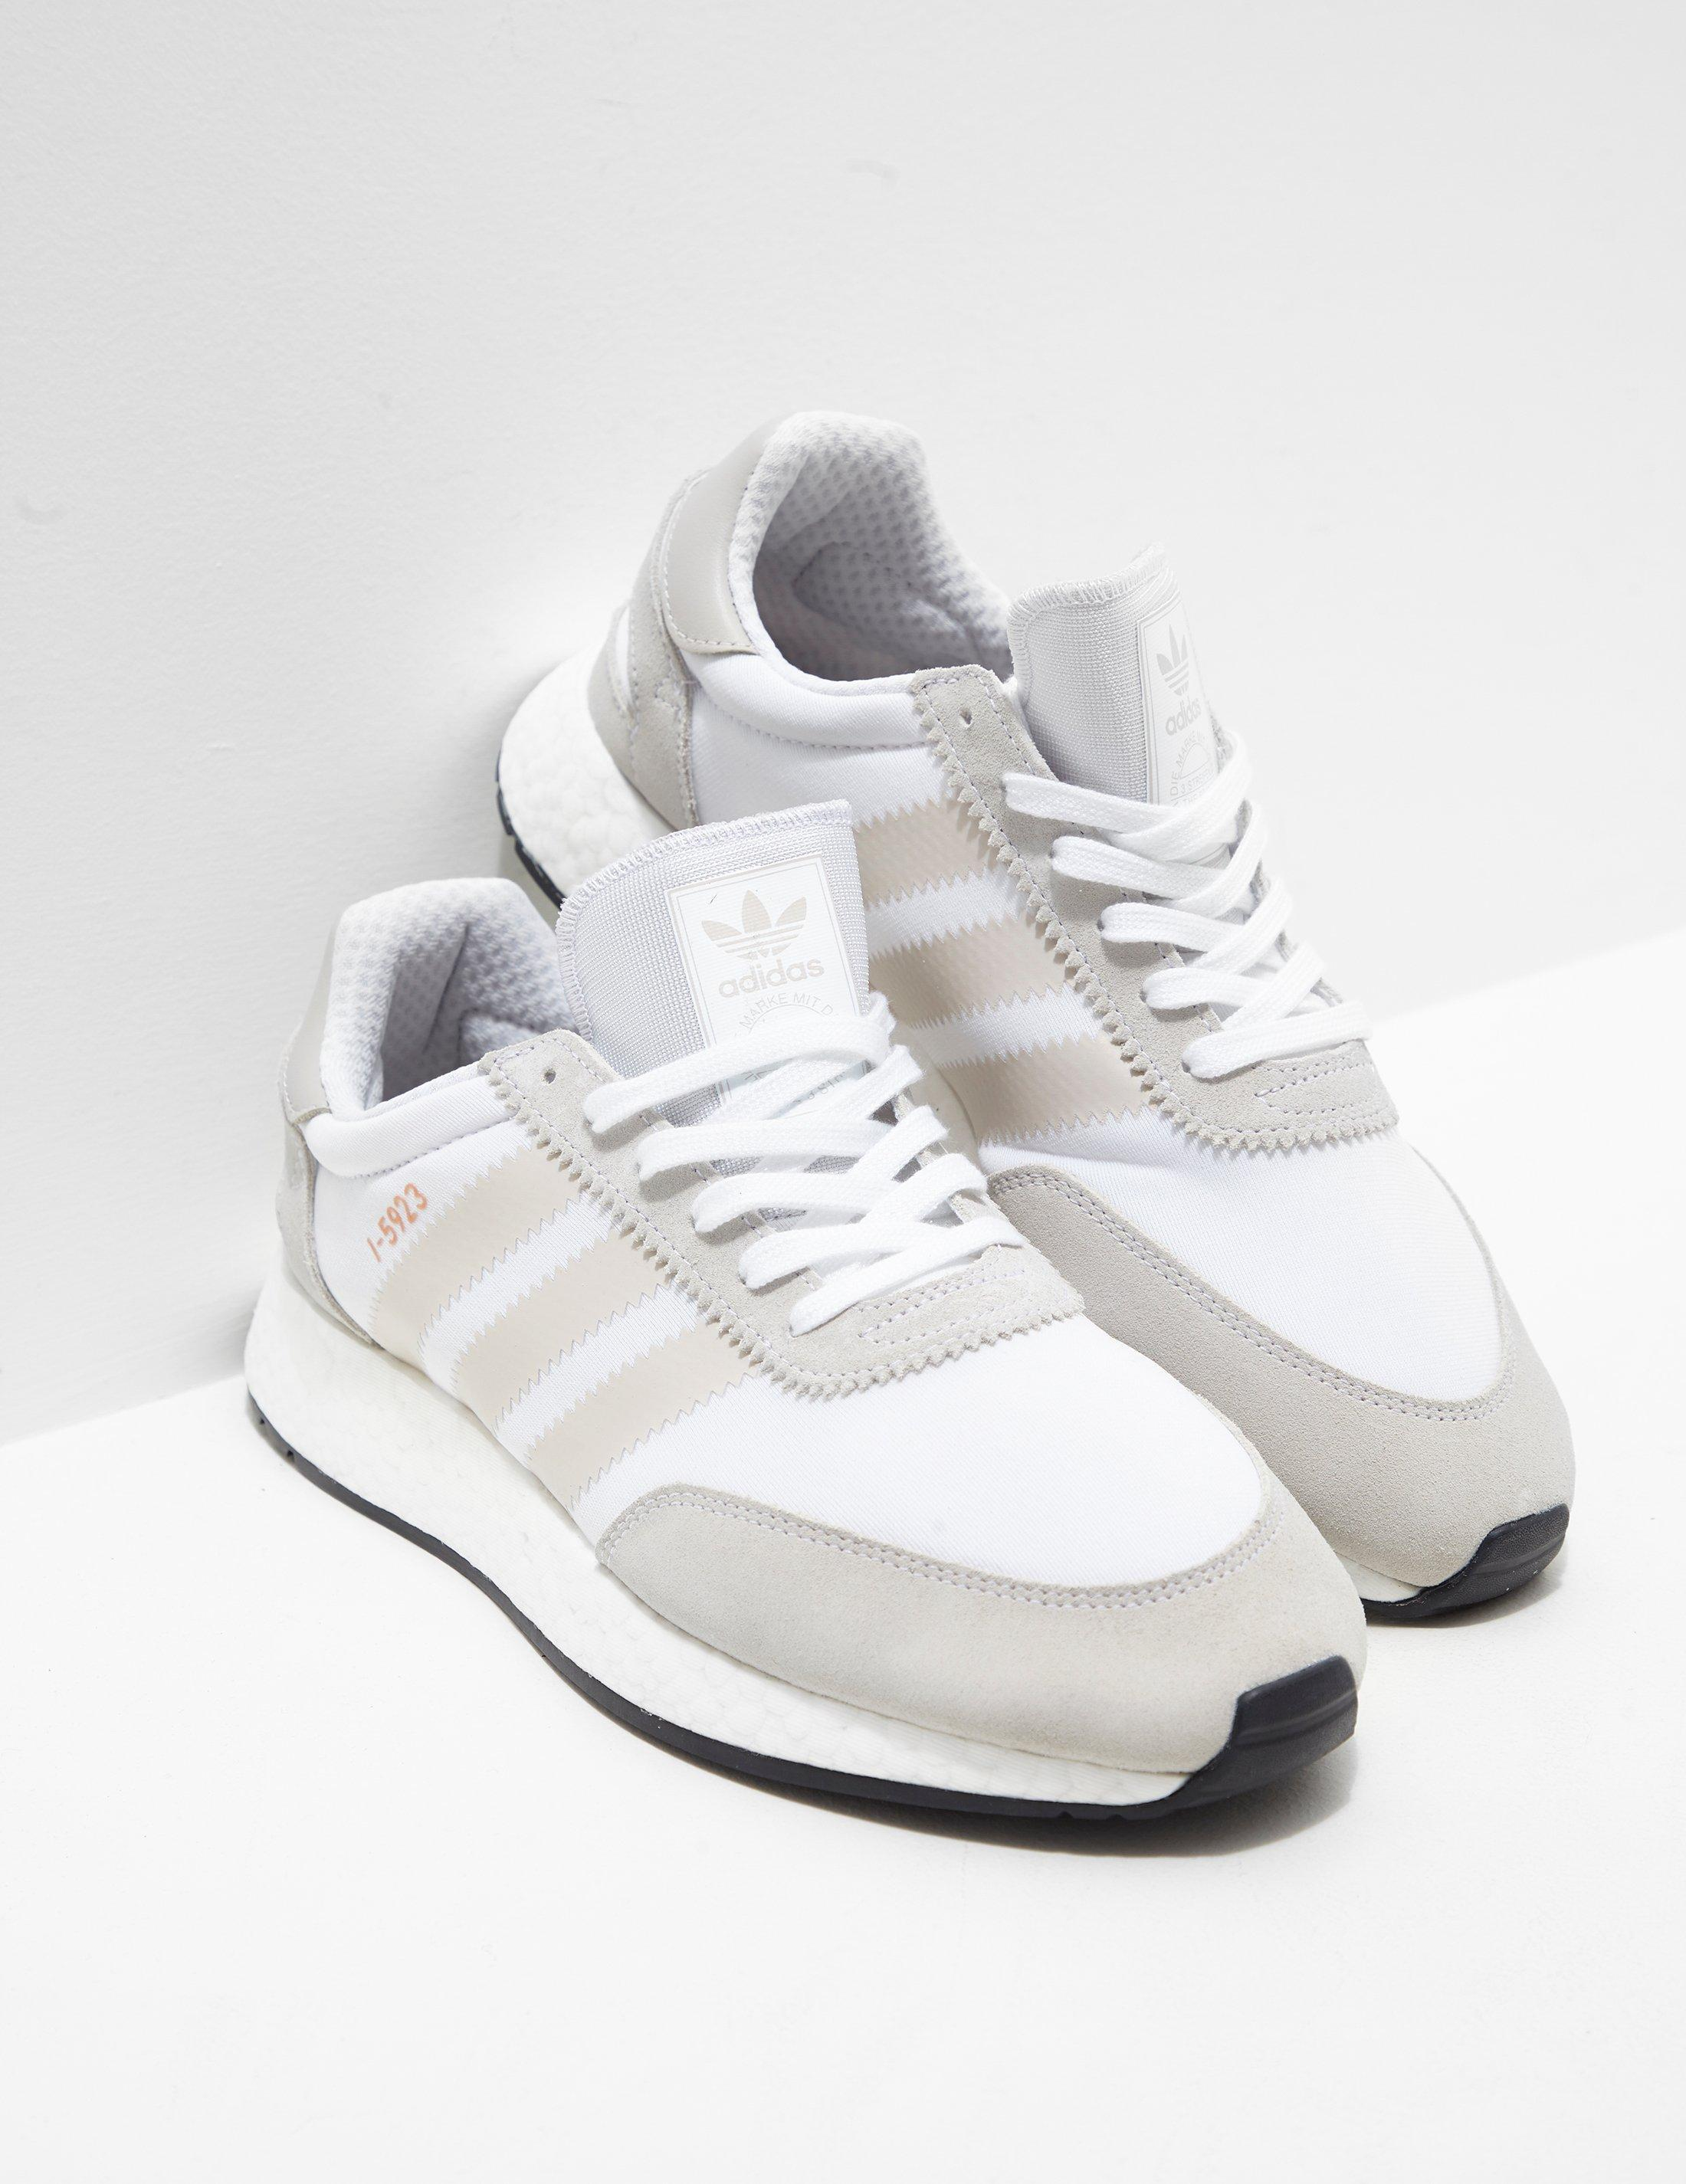 5434efbe82e ... where can i buy lyst adidas originals mens i 5923 boost grey white in  gray for